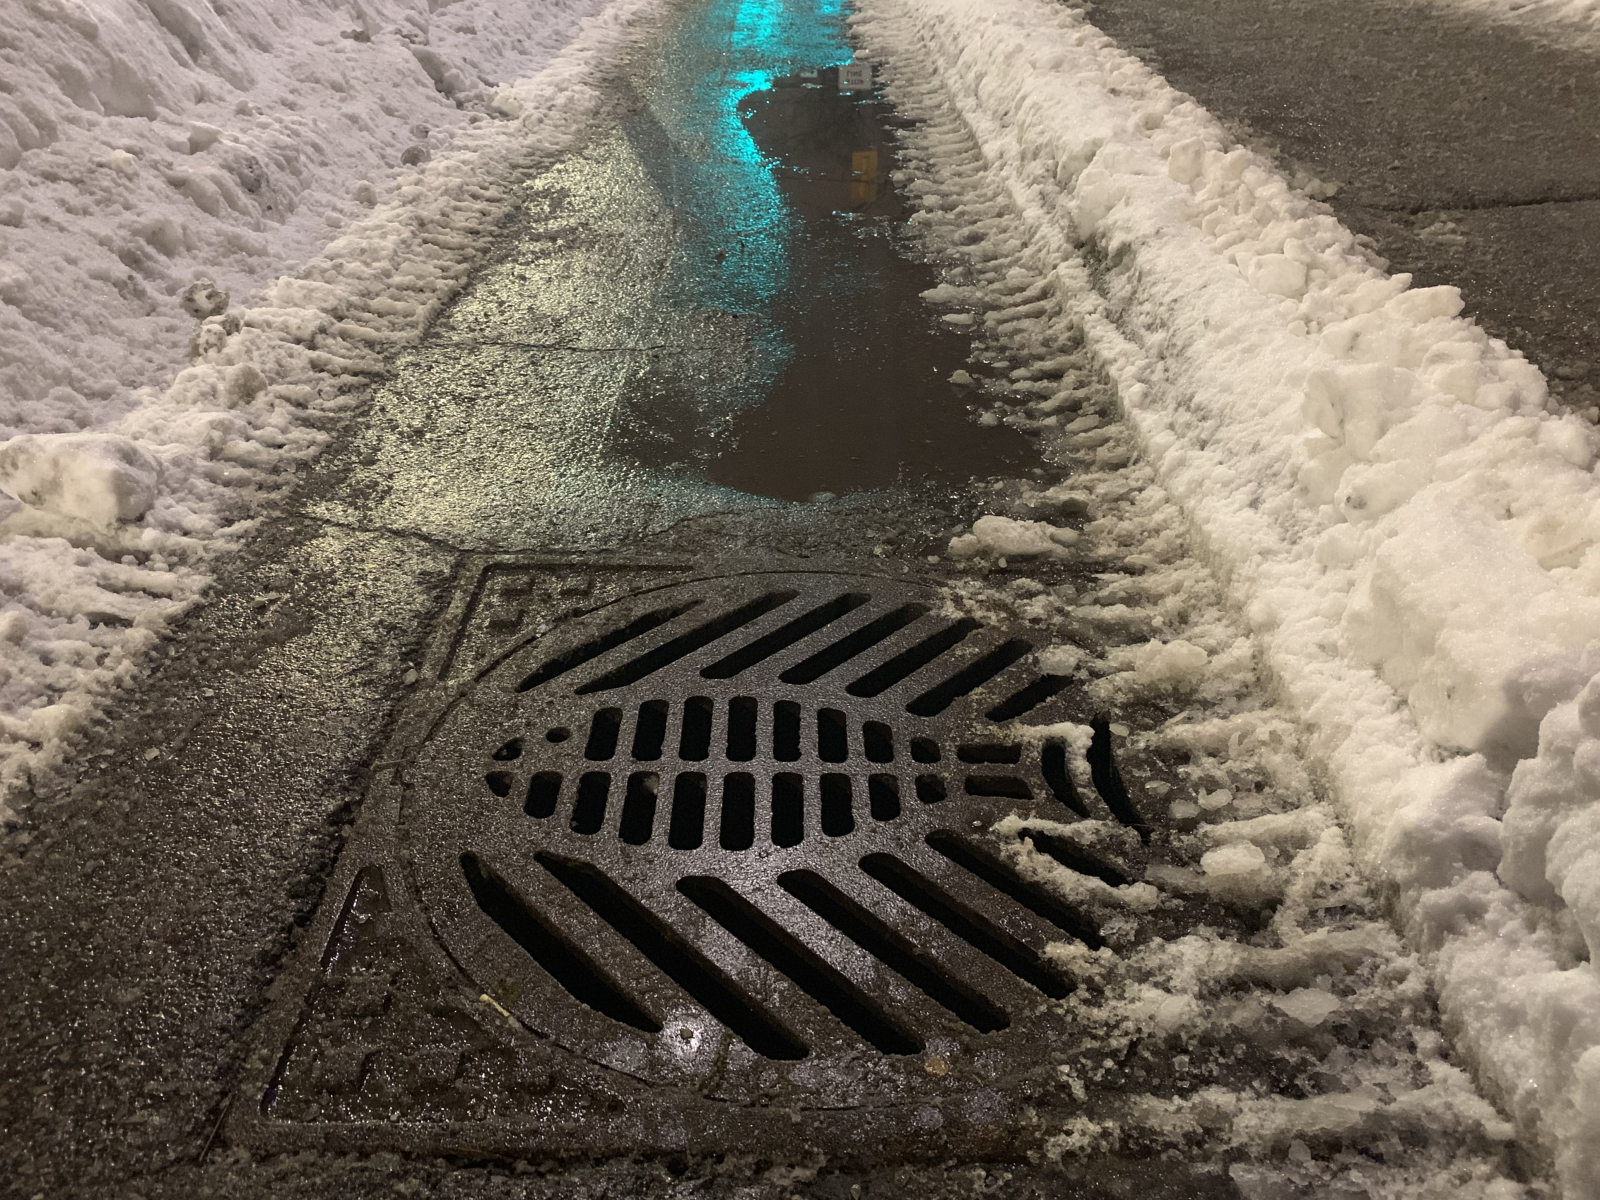 Ottawa-Gatineau pressed to notify public of sewer spills in real